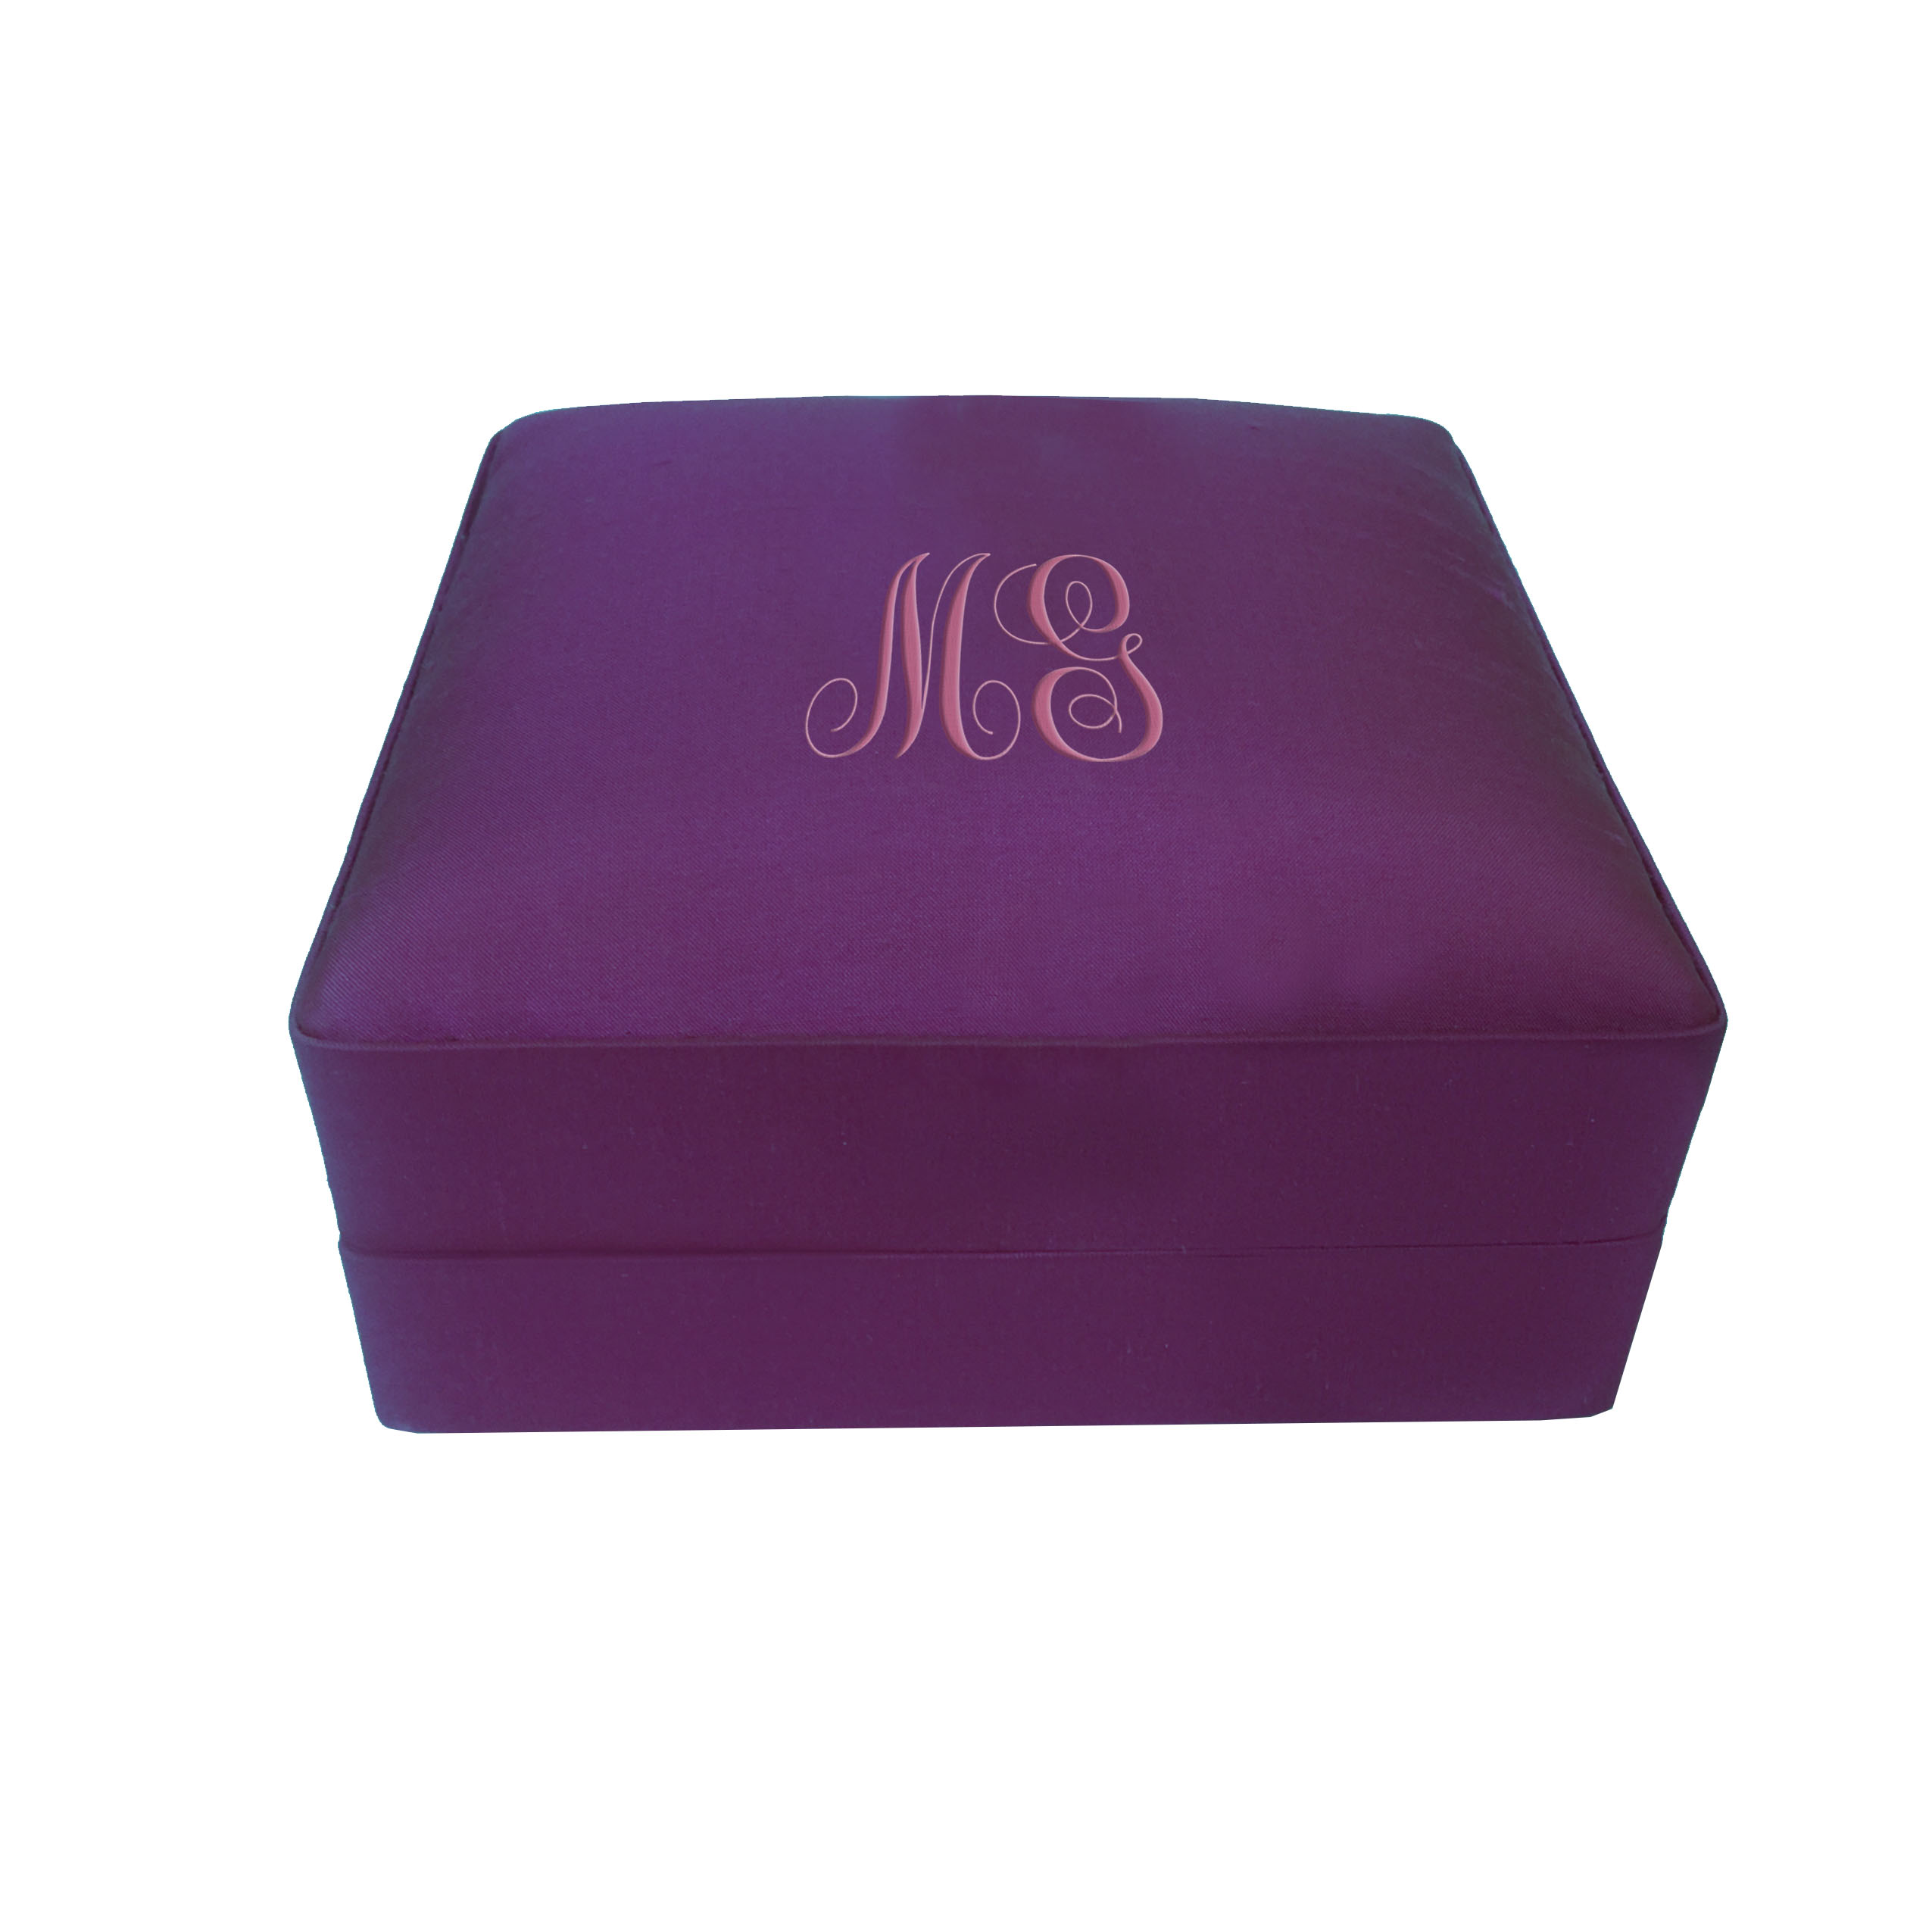 Monogram Embroidered Personalized Silk Jewelry Box For Premium Gift